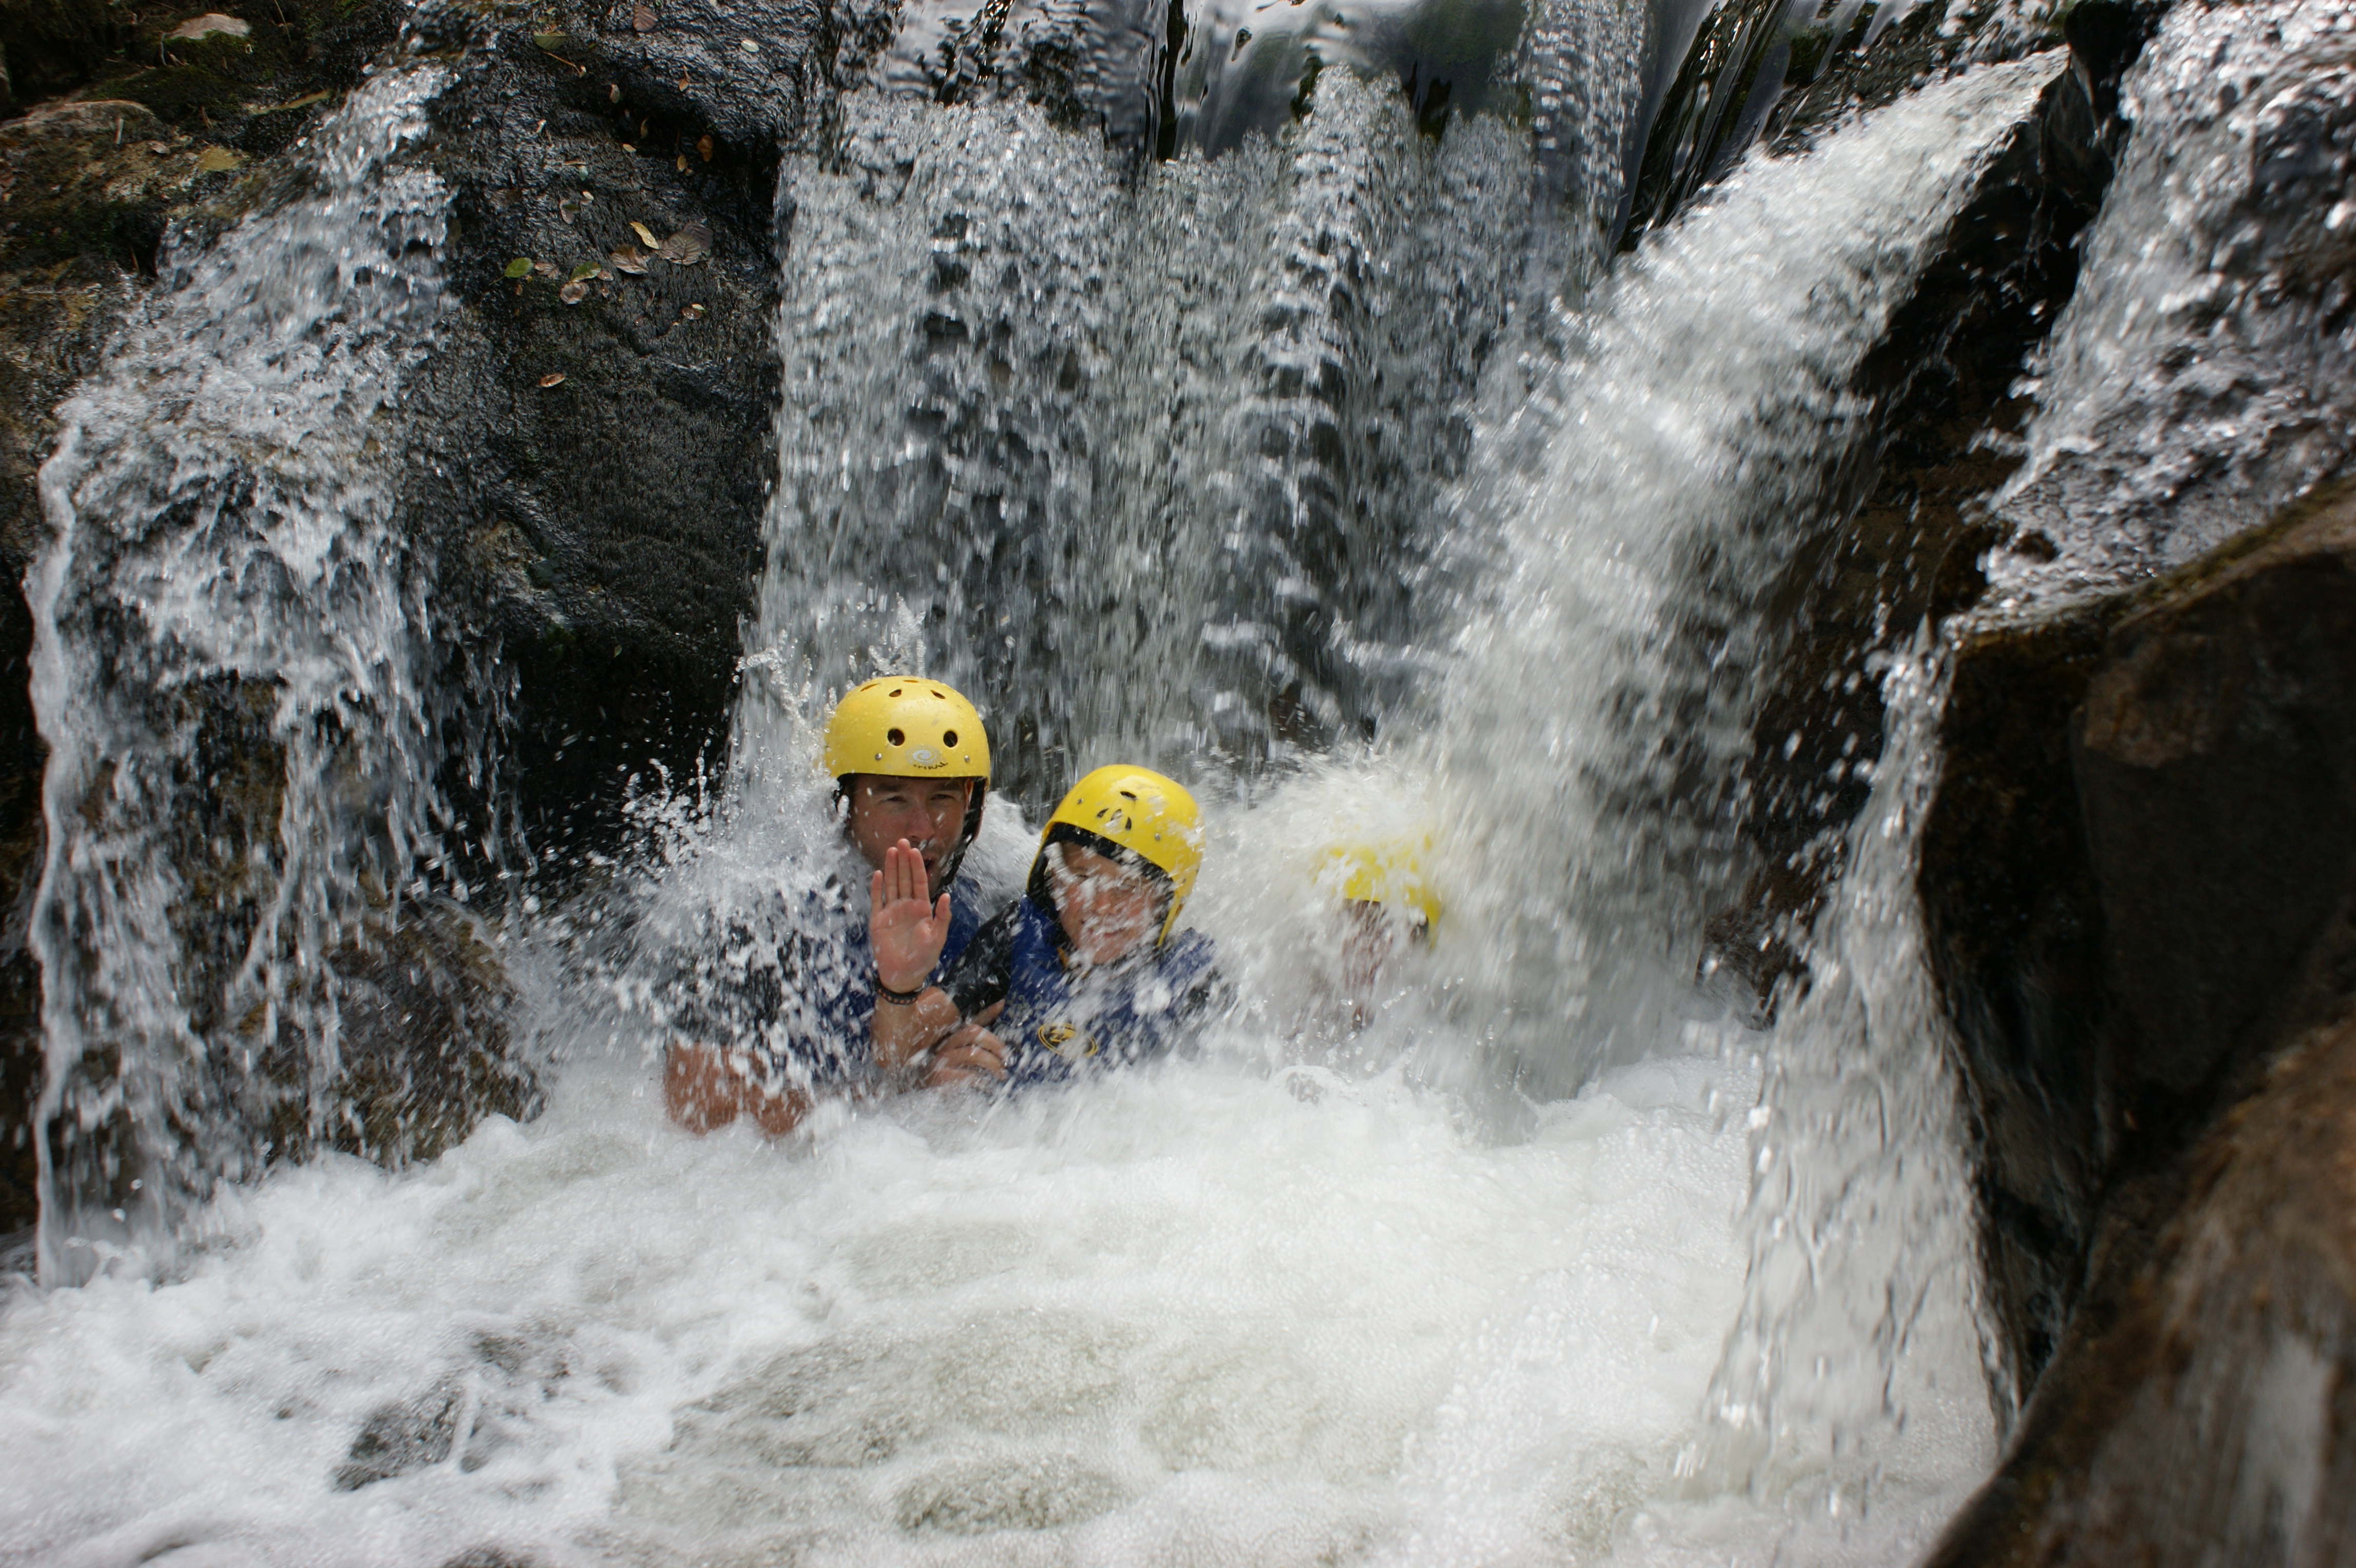 Activités sportives : Canyoning avec Indian Forest